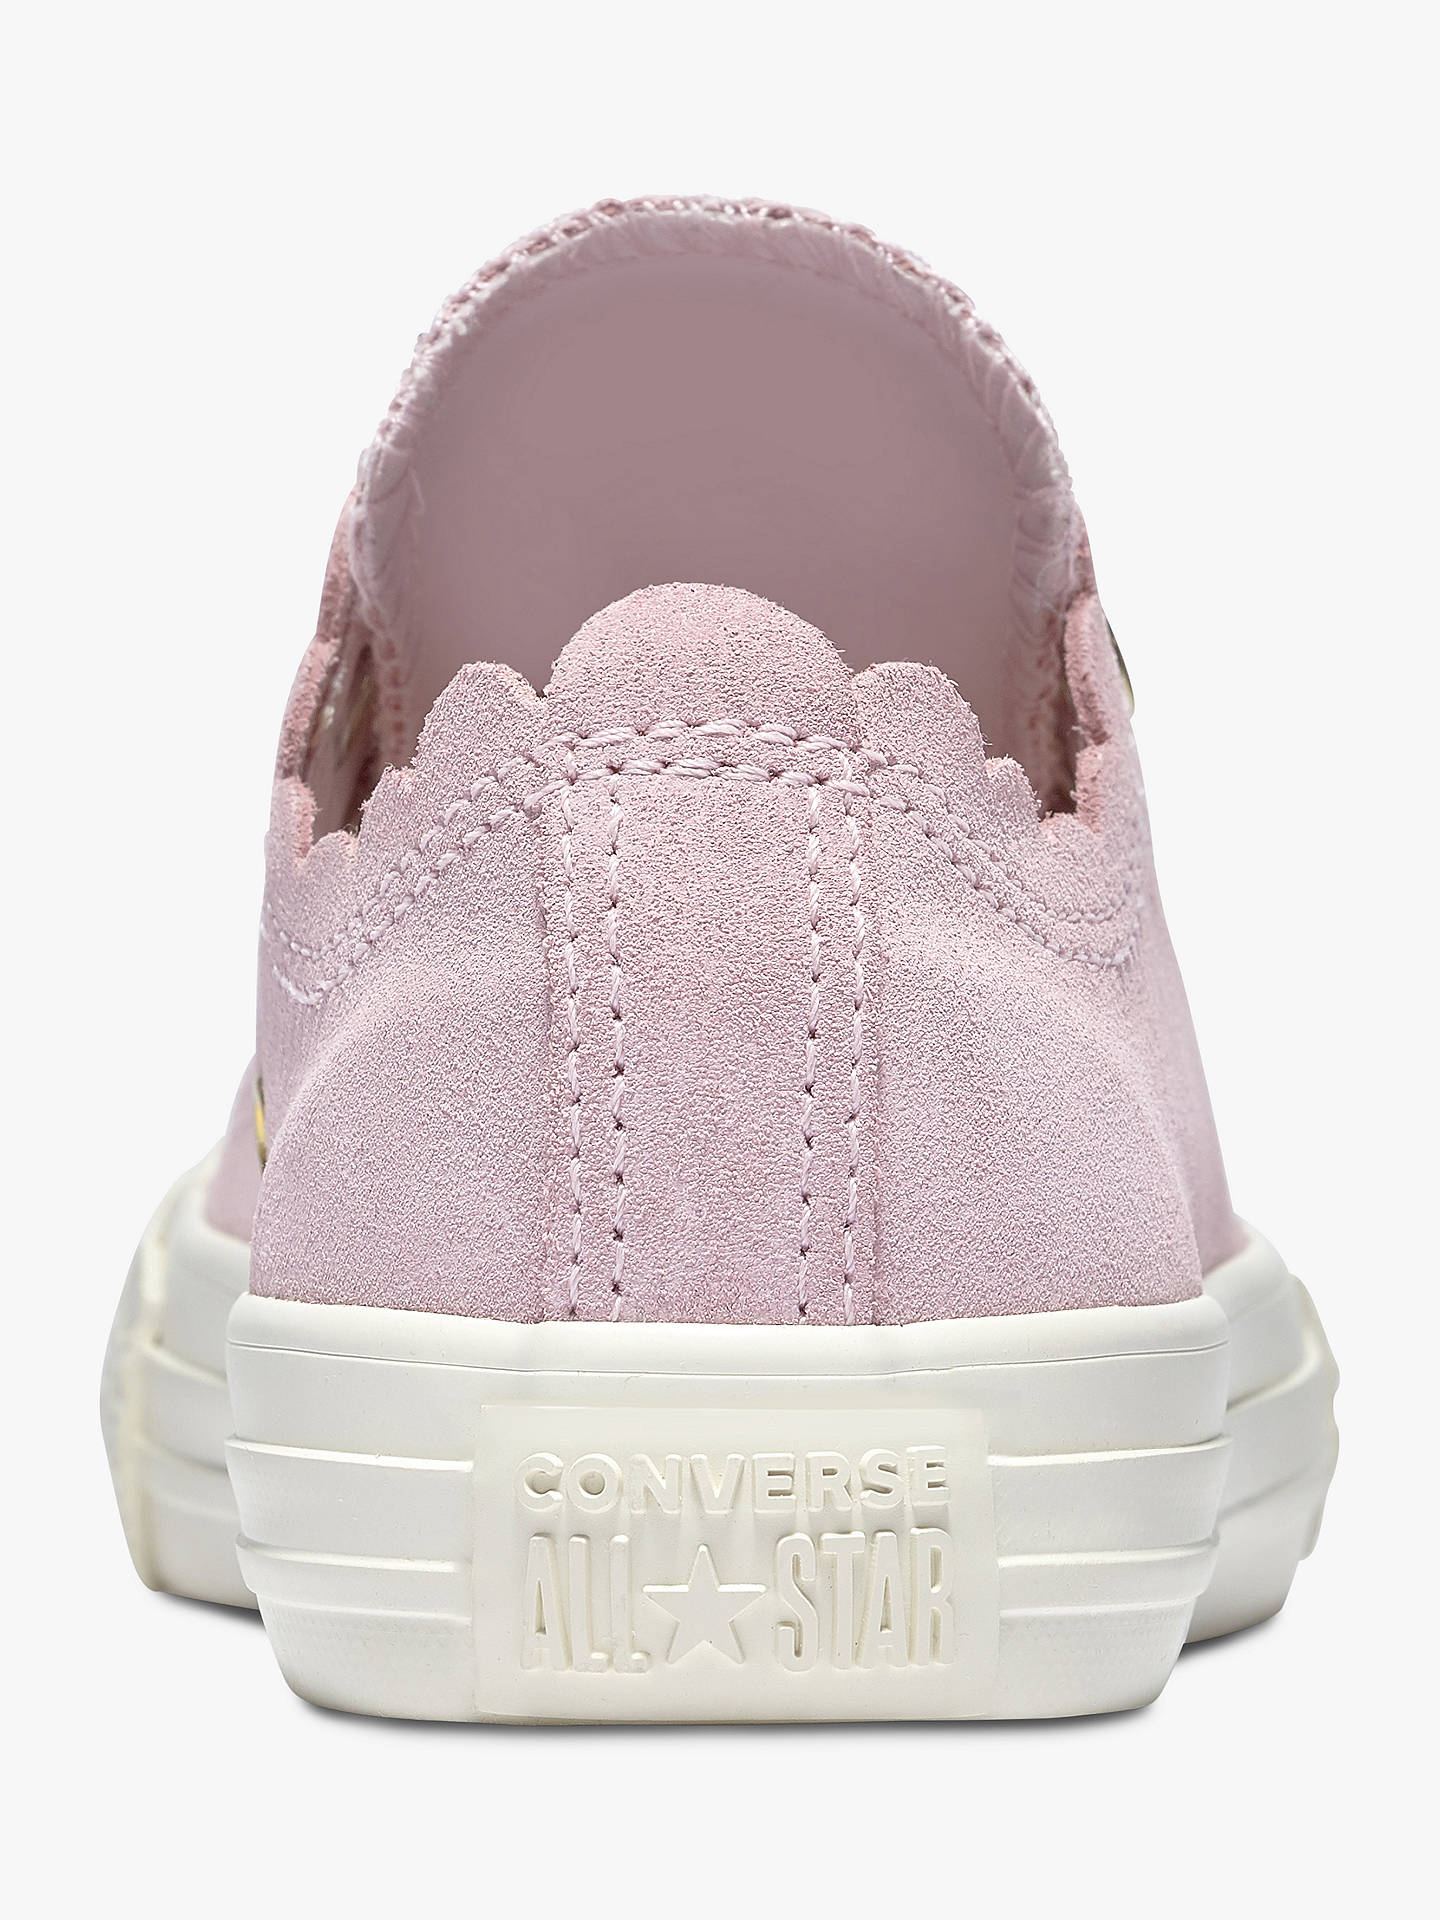 53871c8eff811 Converse Junior All Star Suede Scallop Trainers, Pink, Pink